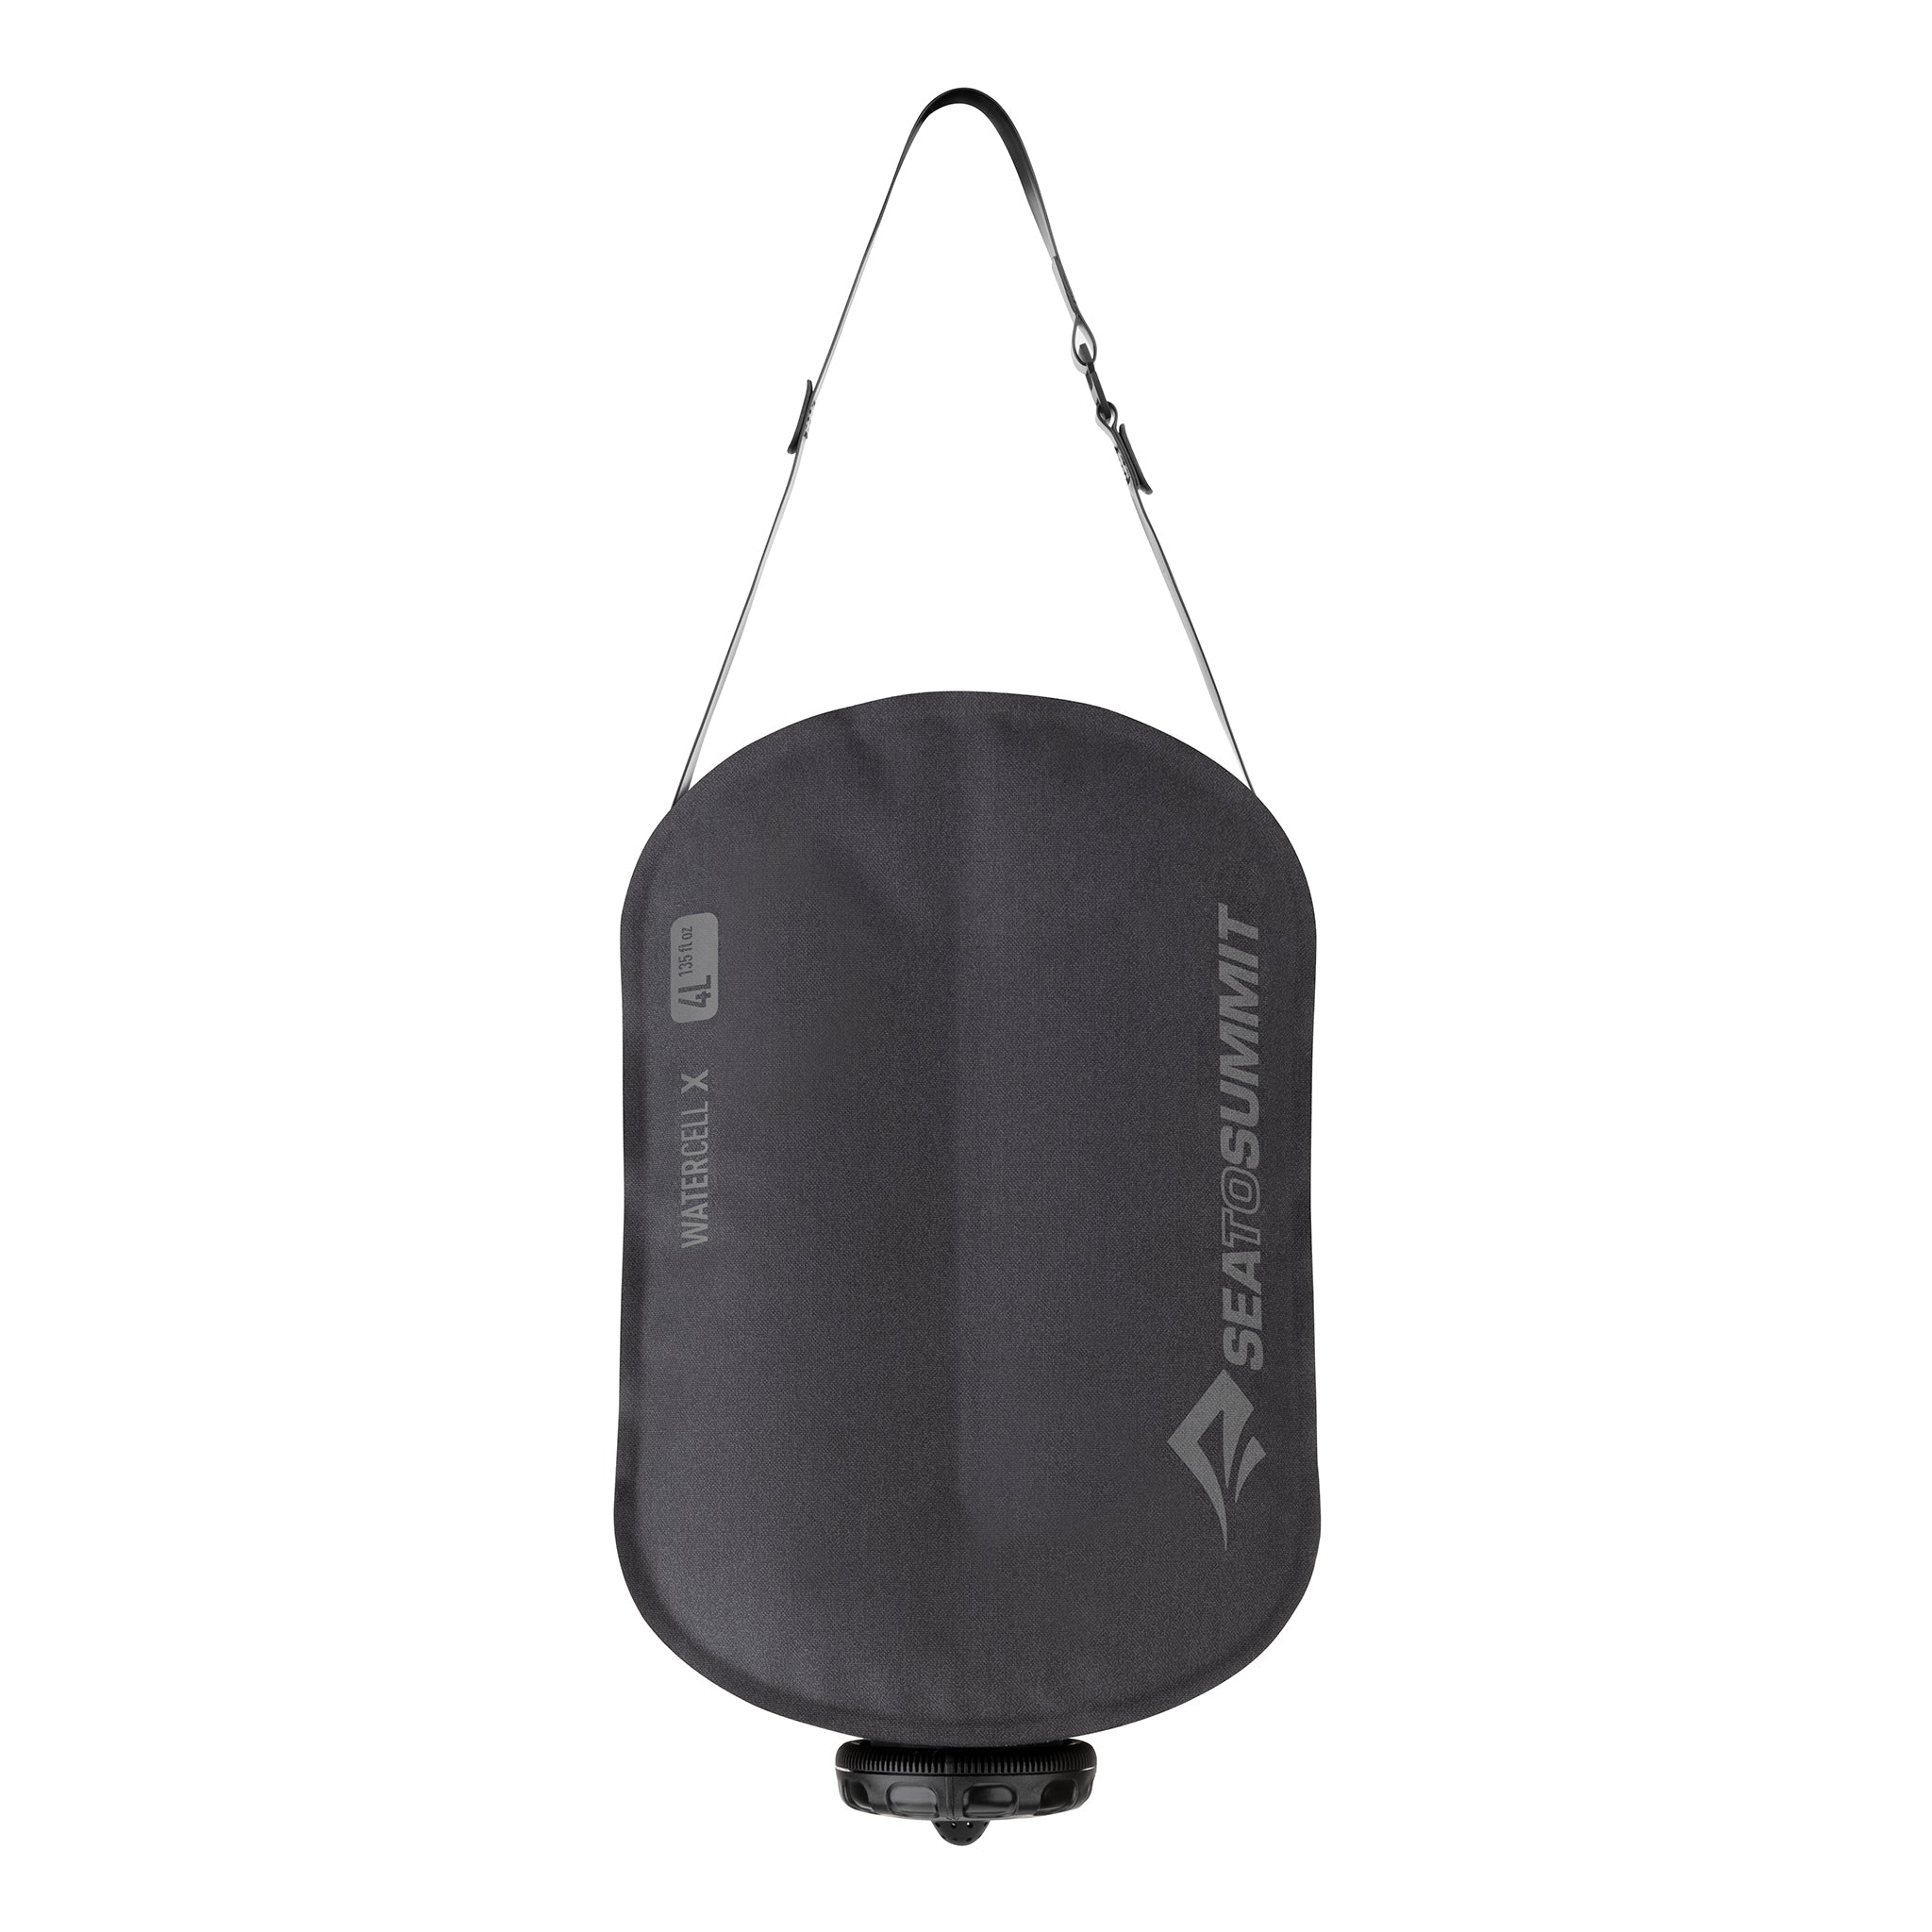 Wartercell X _ durable reservoir water bag _ hanging strap